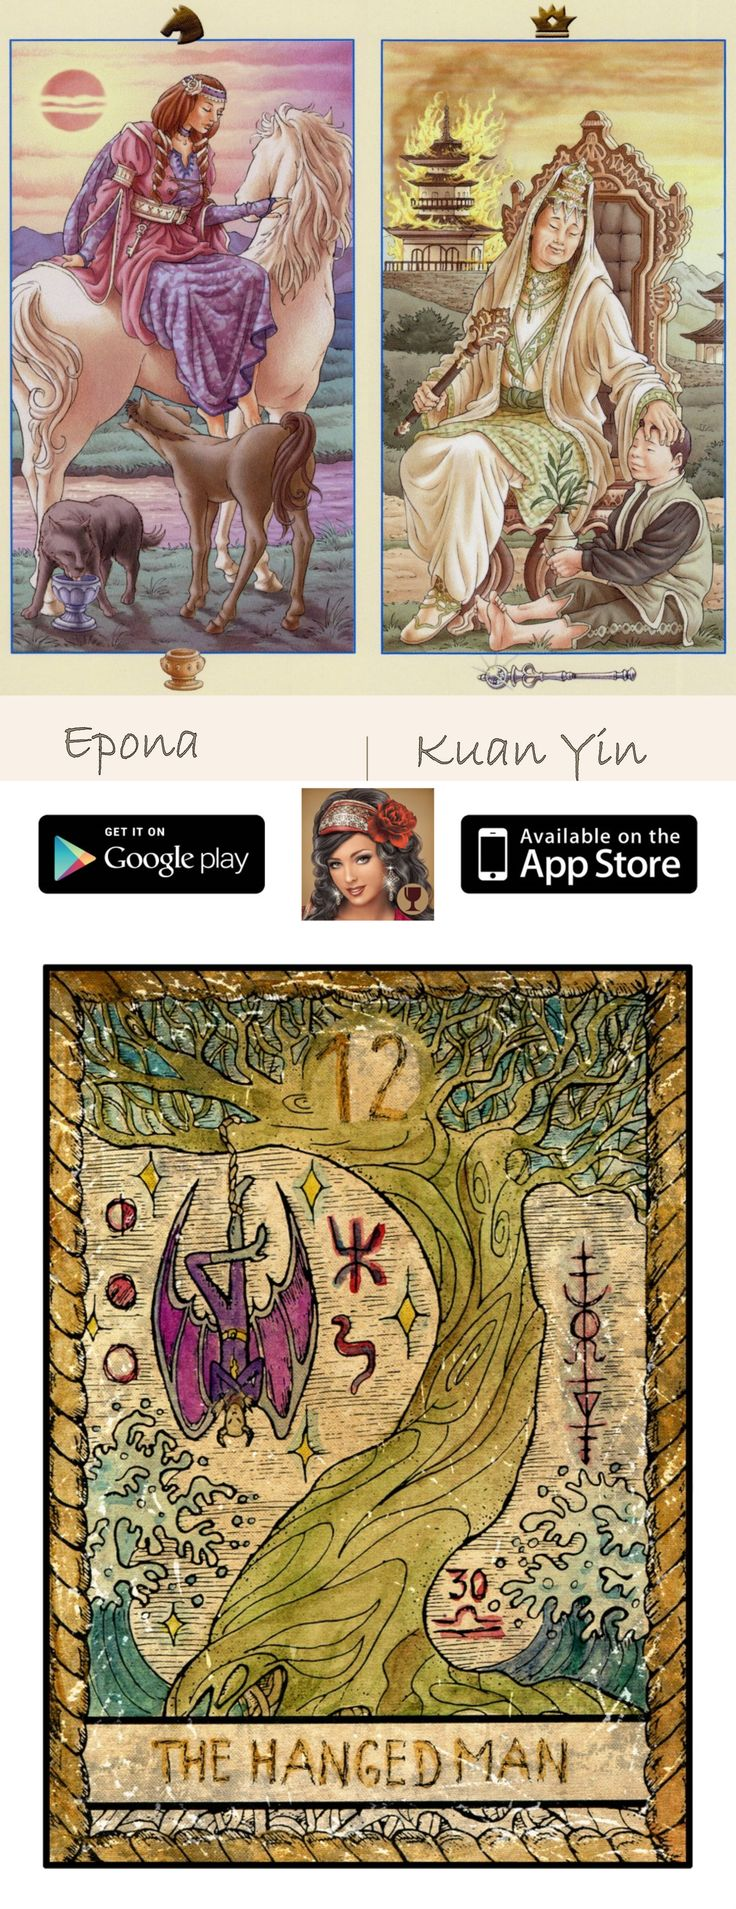 Get the free mobile app on your phone or tablet and enjoy. free on line tarot reading, atarotreading and ask free astrology question instant answer, tarotspreads and free online tarot reading uk. New psychic readings medium and fortune telling diy.